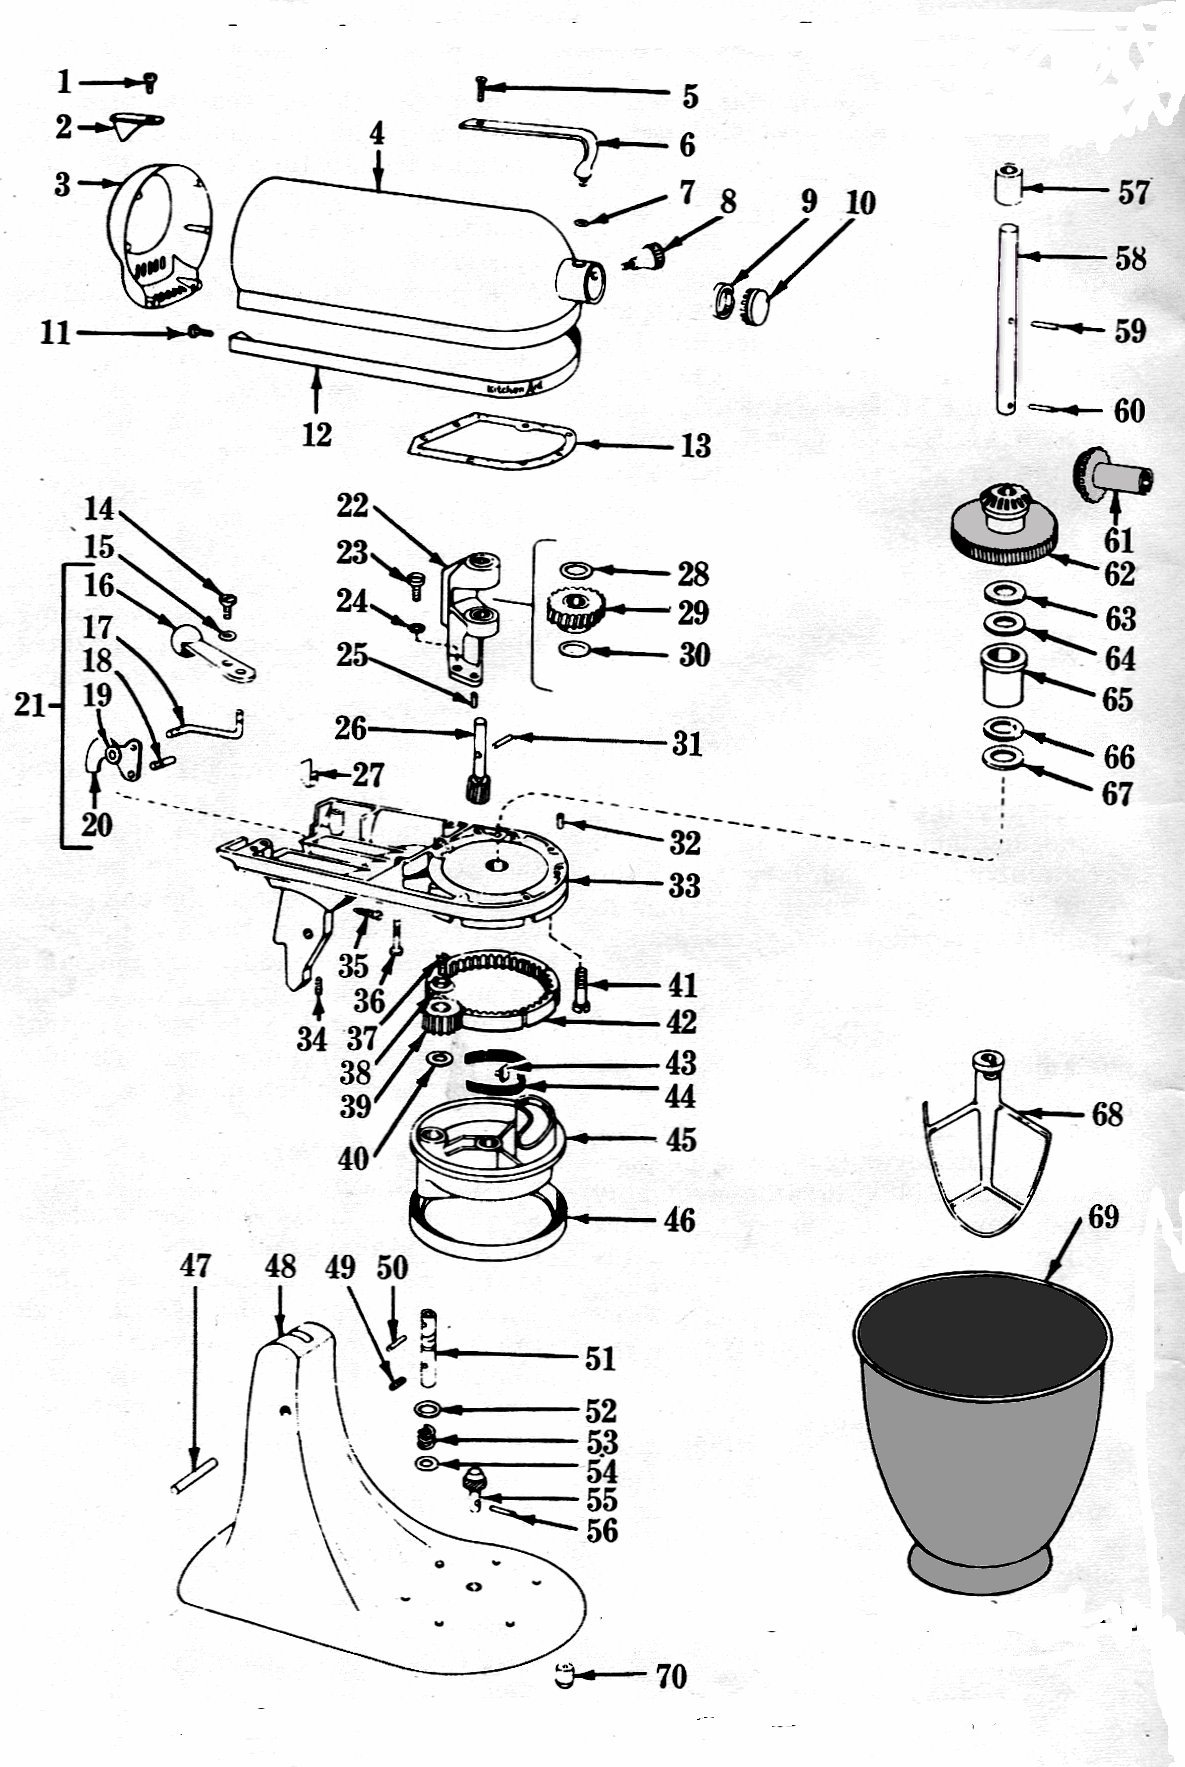 kitchenaid food mixer k4 b maintenance and repair manual edited by rh amazon com owners manual kitchenaid dishwasher owners manual kitchenaid dishwasher